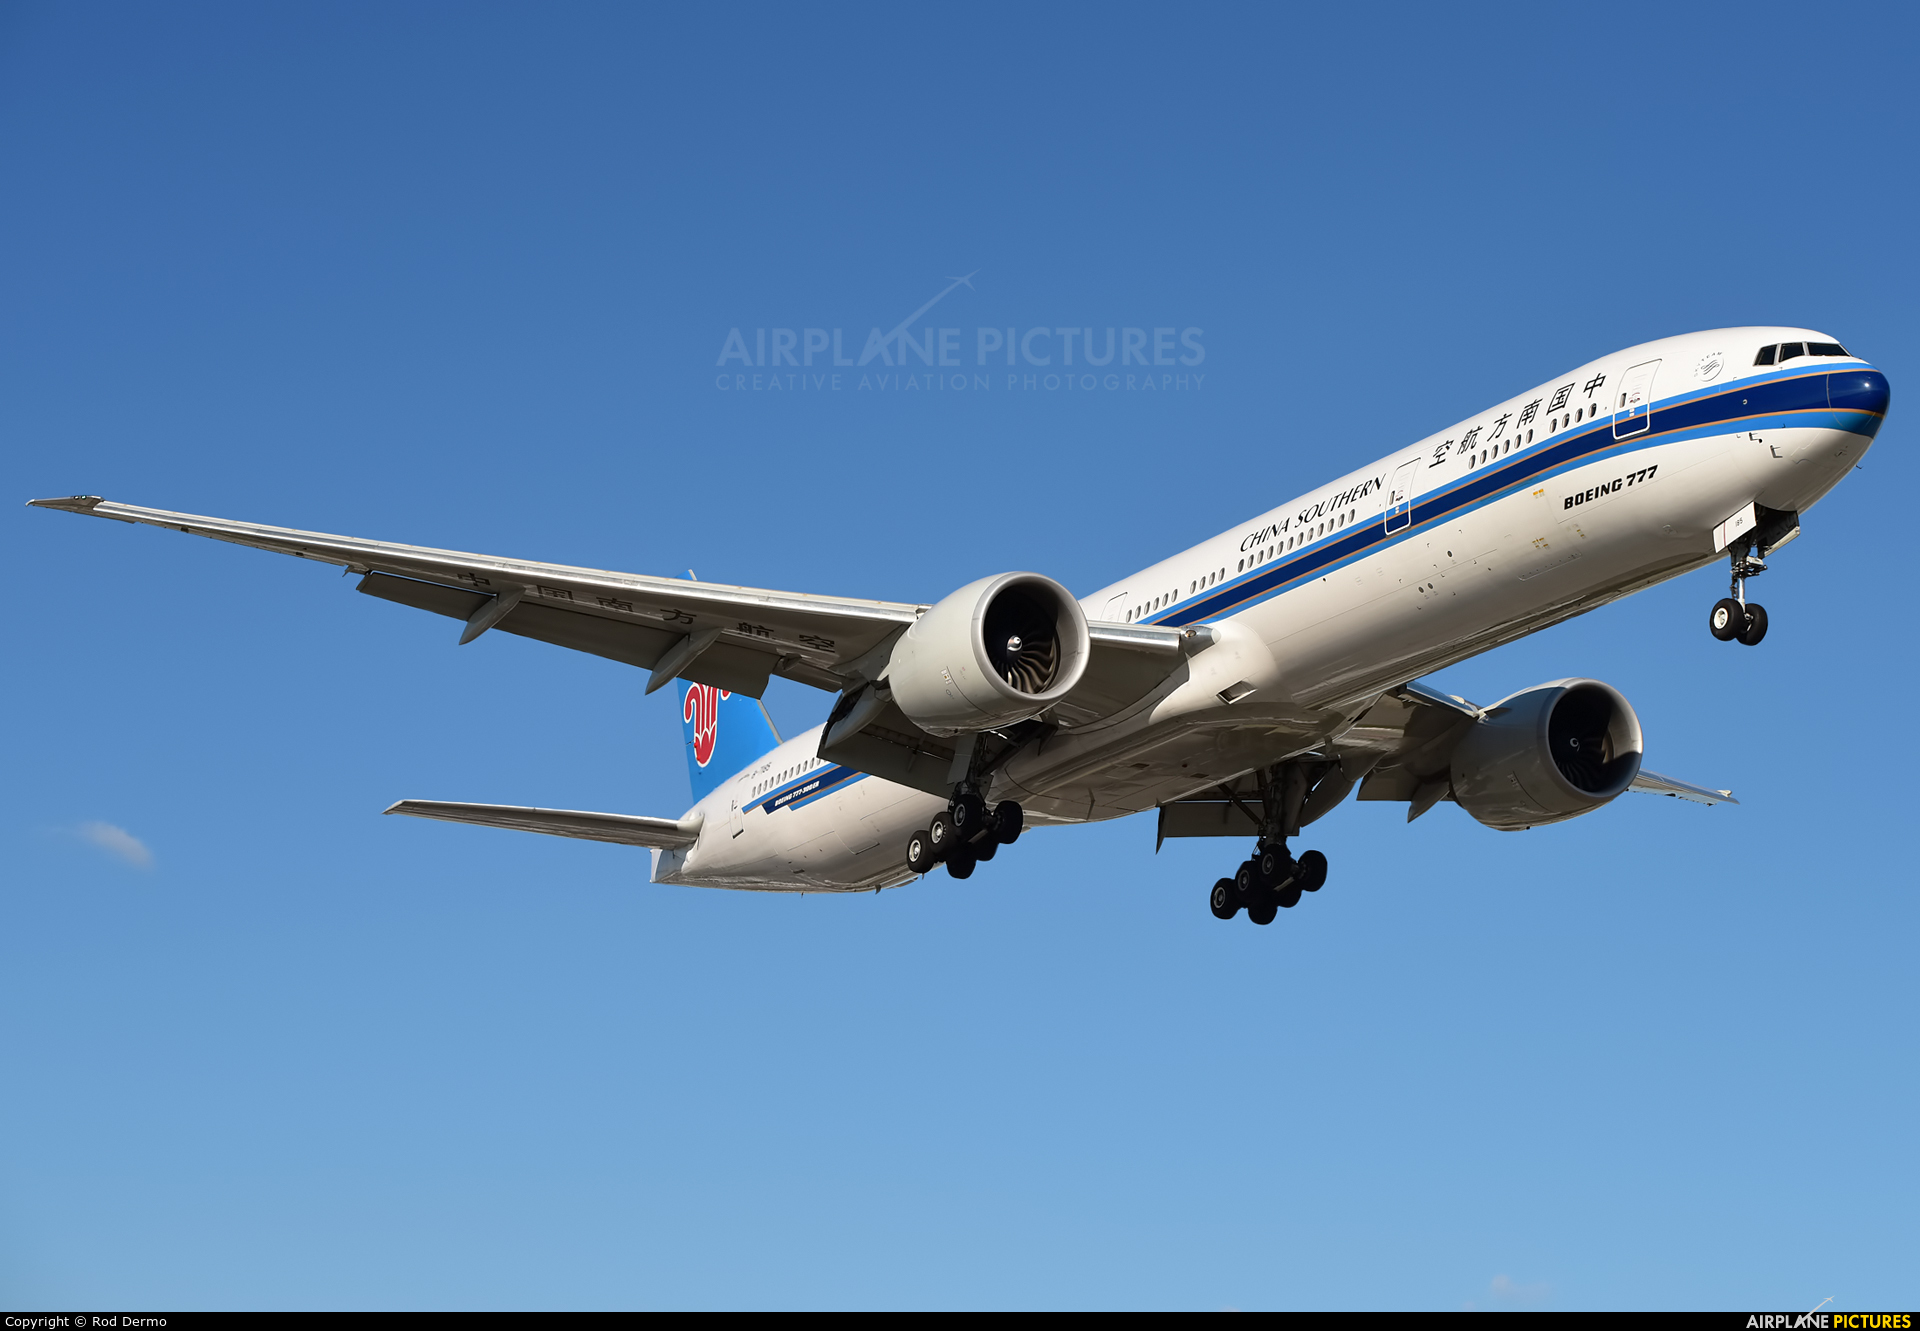 China Southern Airlines B-7183 aircraft at Toronto - Pearson Intl, ON